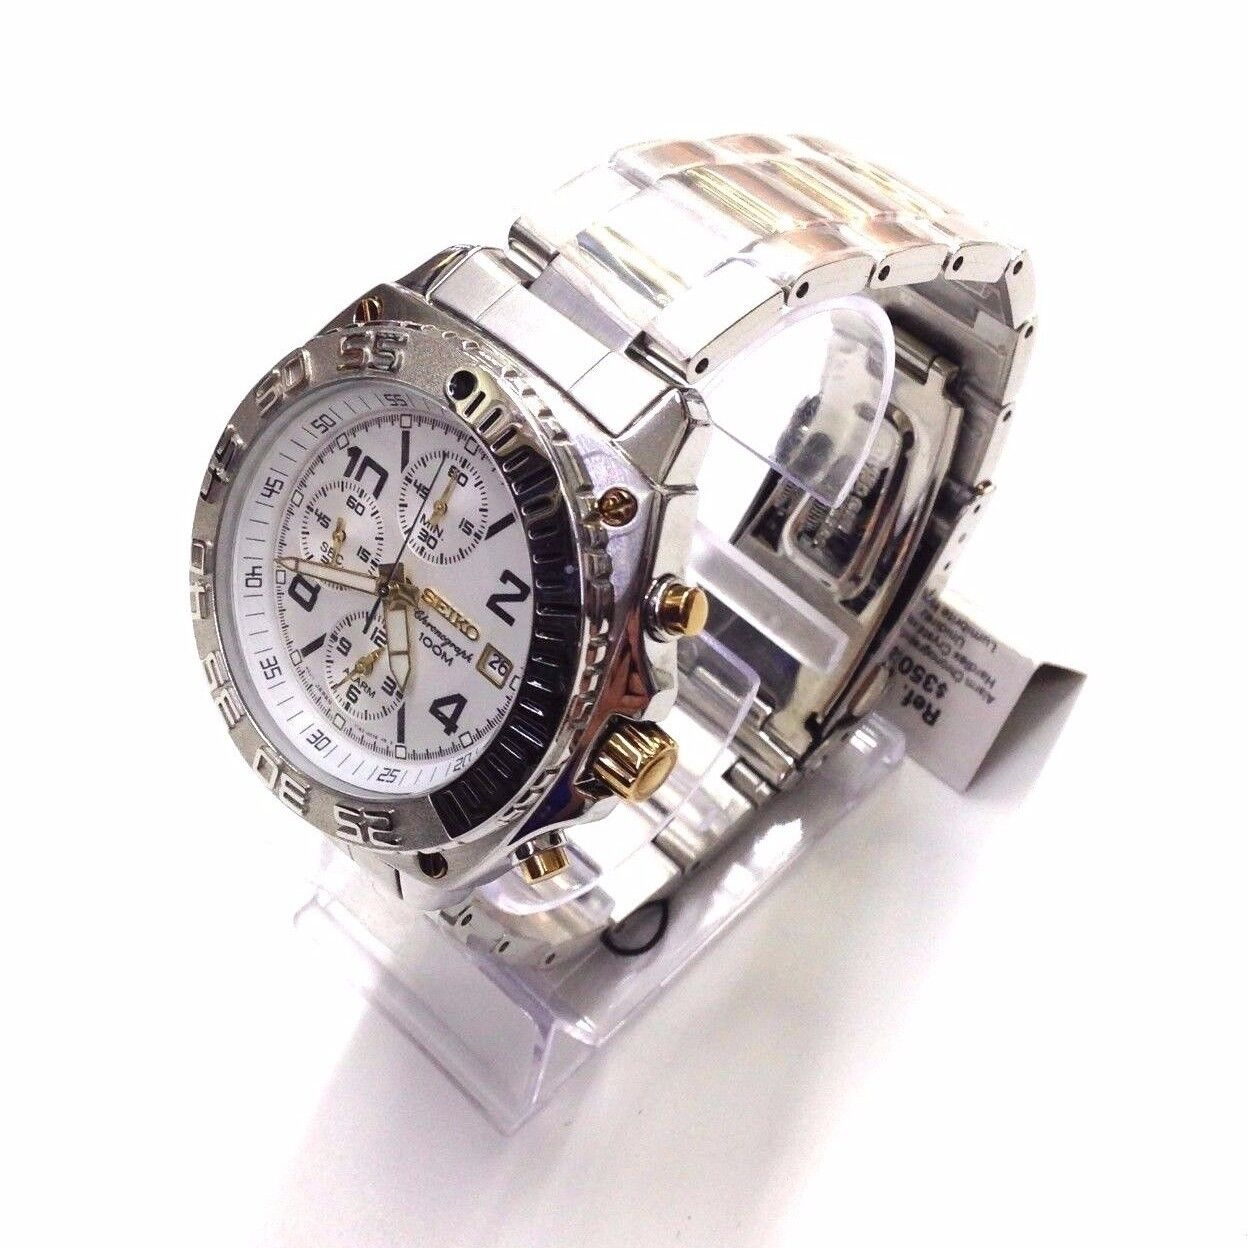 Mens Watches - SEIKO Men's Silver Gold Two Tone Stainless Steel Chronograph Quartz Watch SNA619